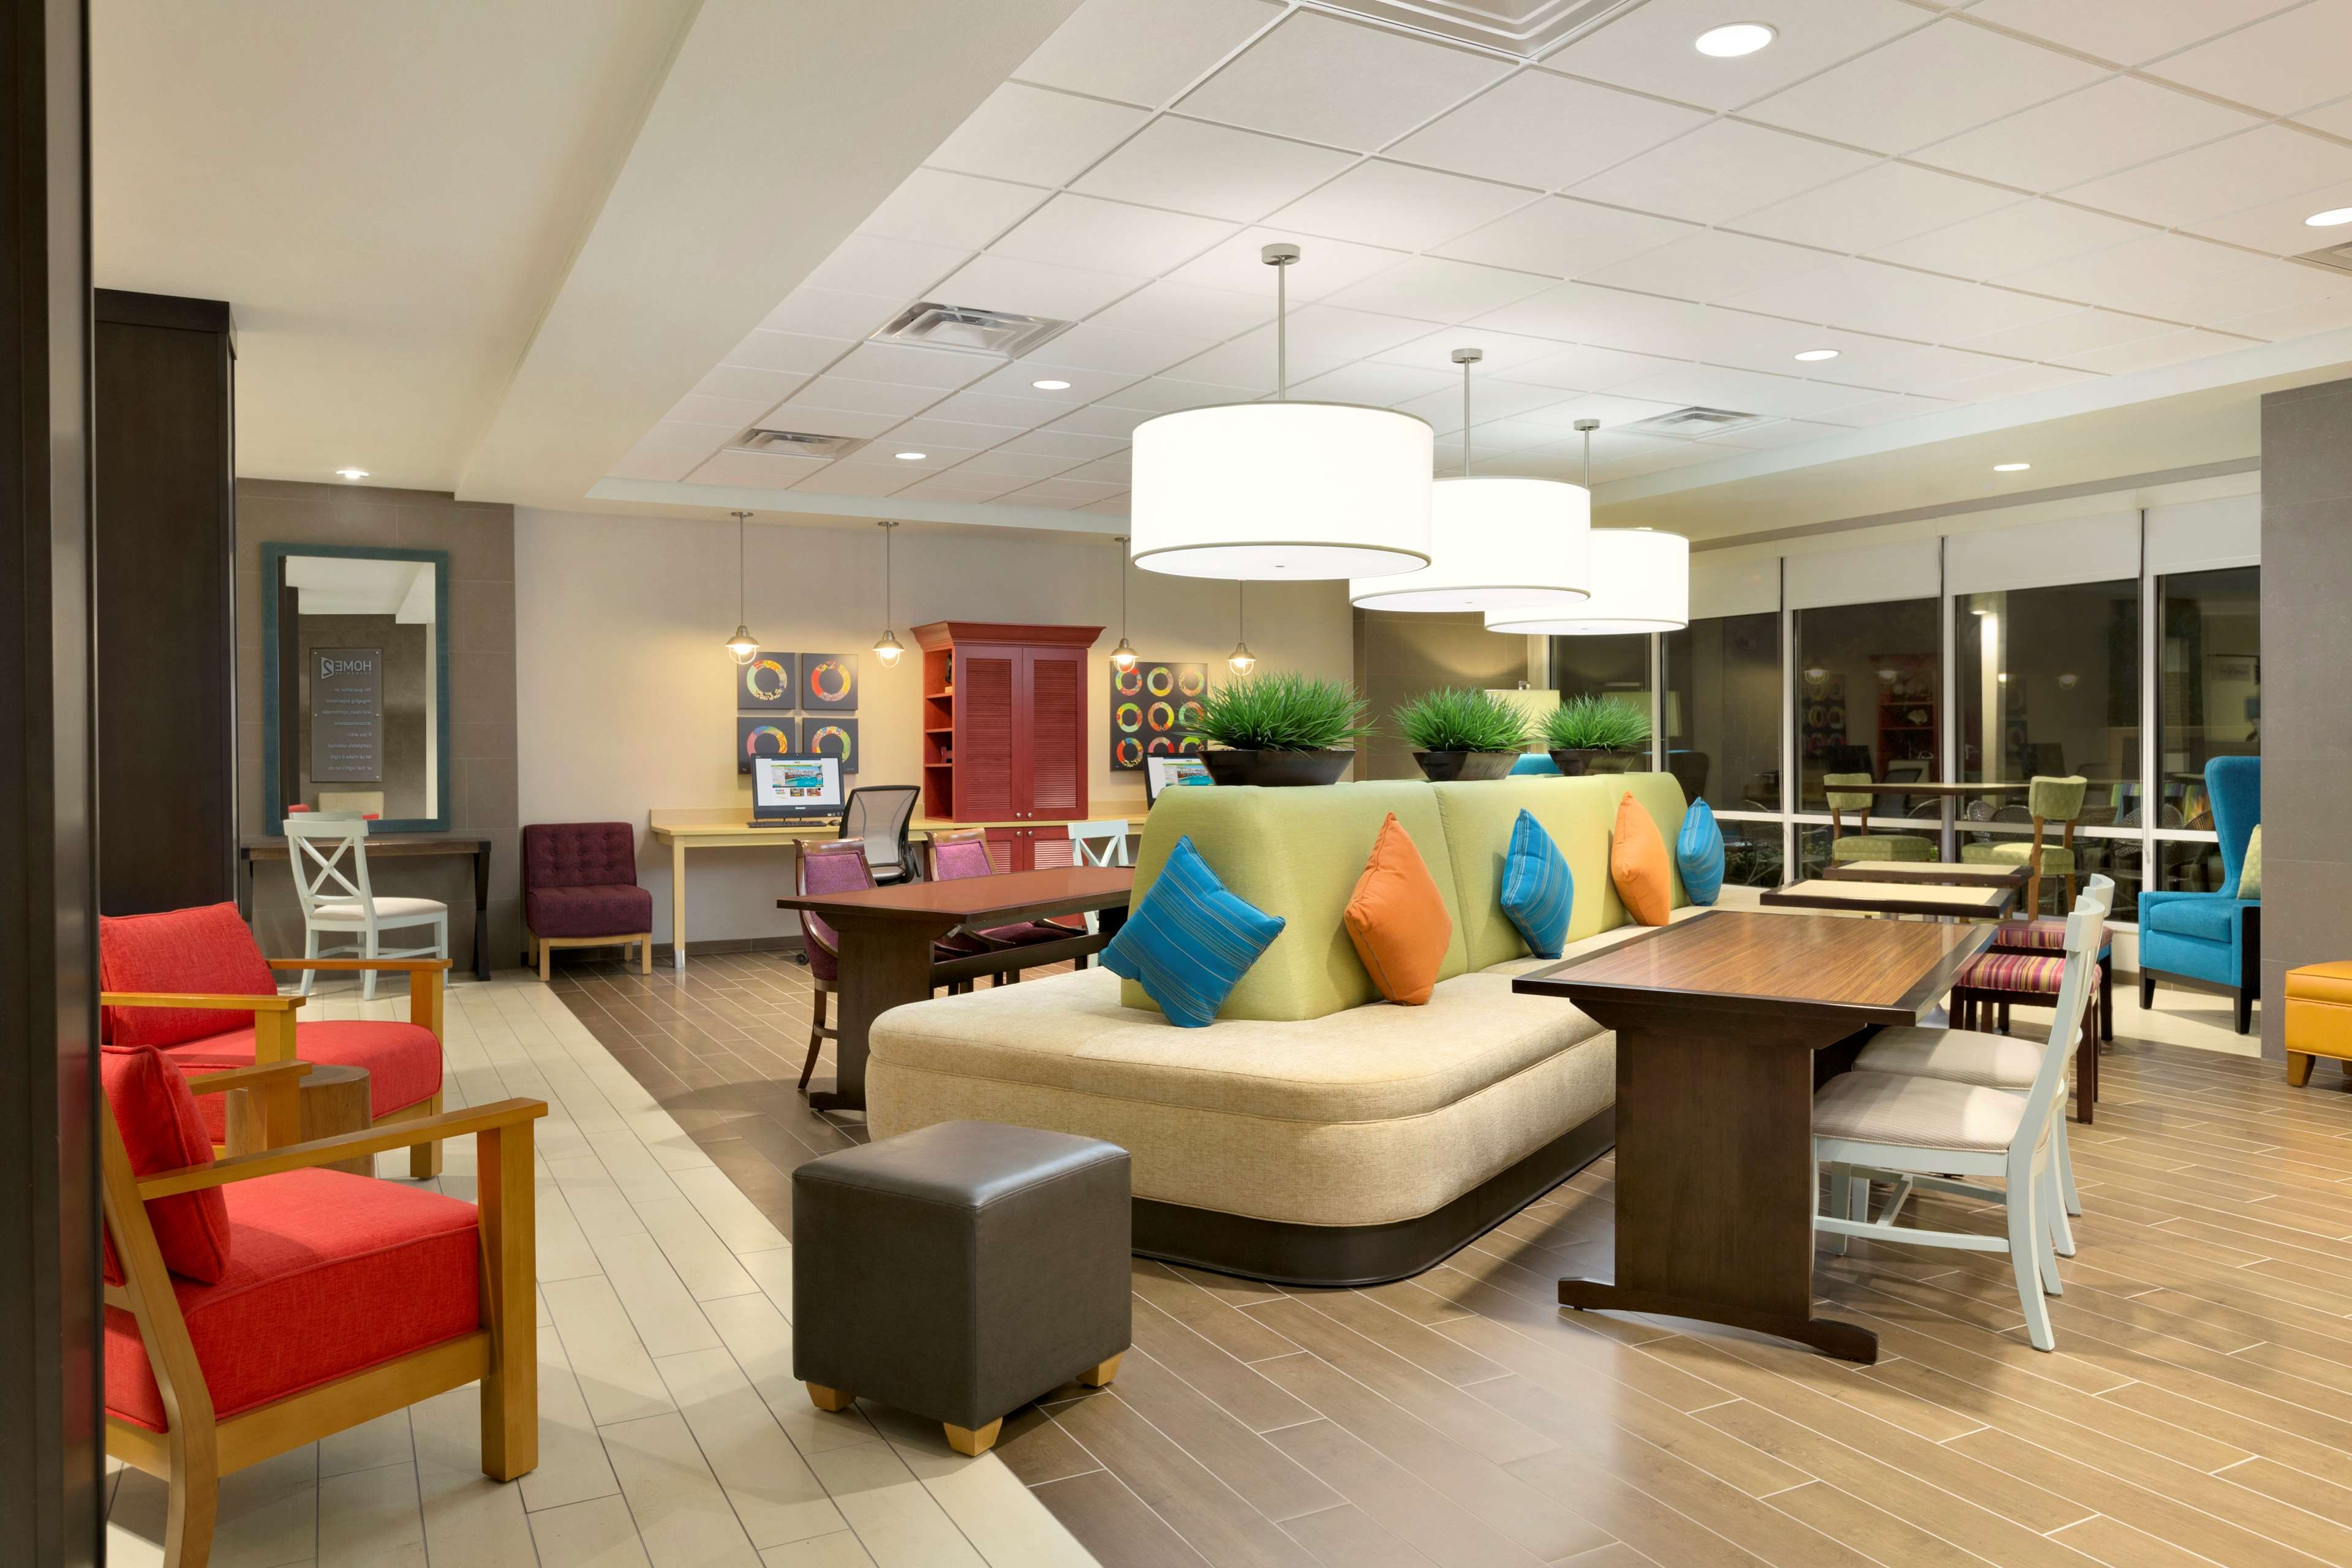 Home2 Suites by Hilton Houston Willowbrook image 1